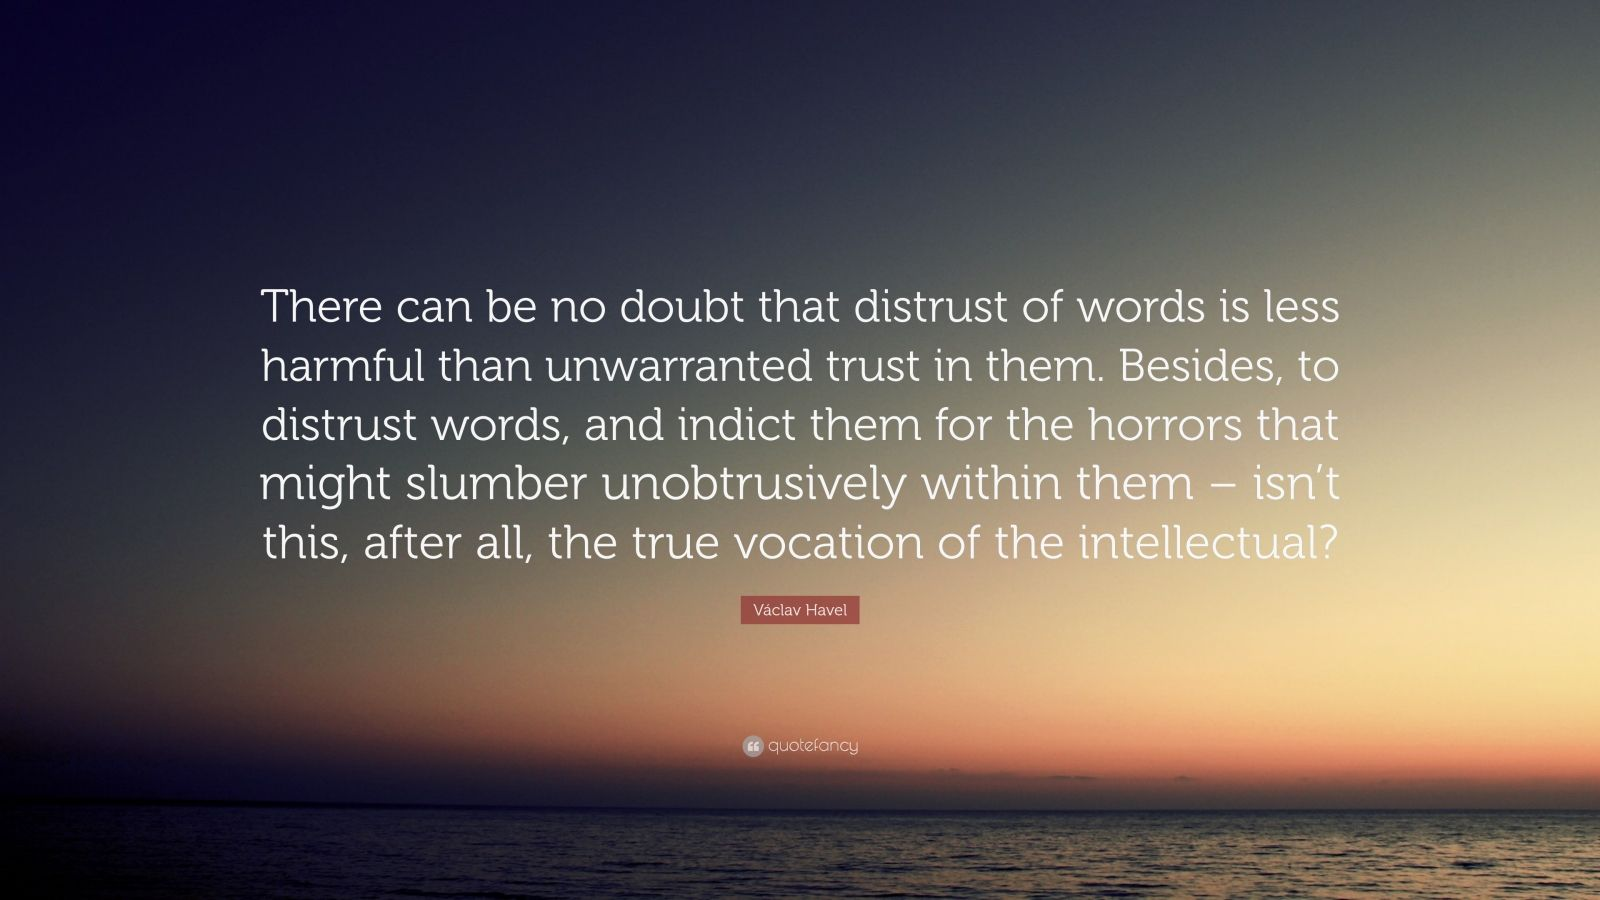 """Václav Havel Quote: """"There can be no doubt that distrust of words is less harmful than unwarranted trust in them. Besides, to distrust words, and indict them for the horrors that might slumber unobtrusively within them – isn't this, after all, the true vocation of the intellectual?"""""""